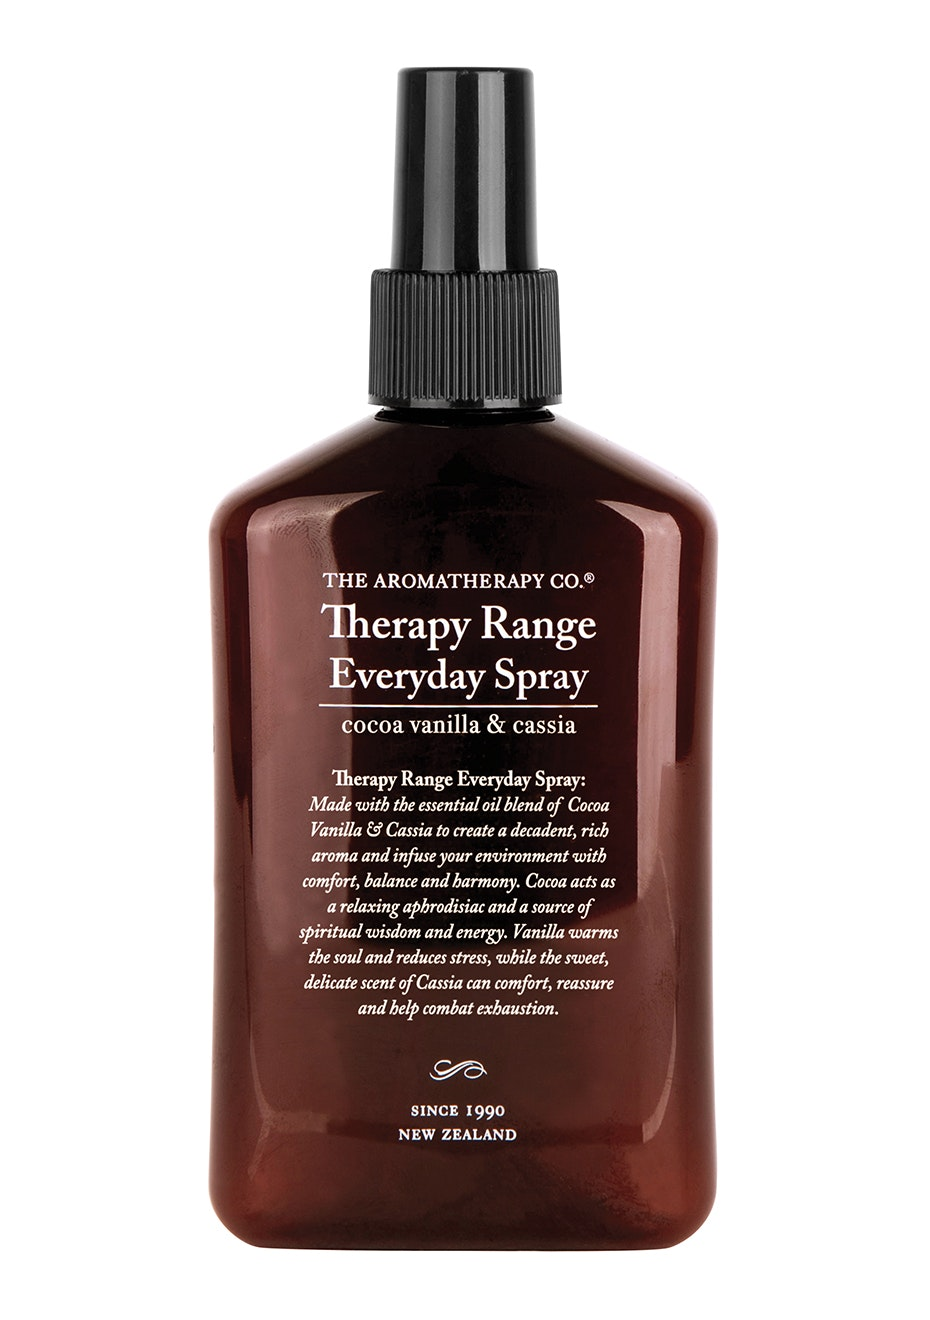 The Aromatherapy Co. Therapy Everyday Spray - Cocoa Vanilla & Cassia